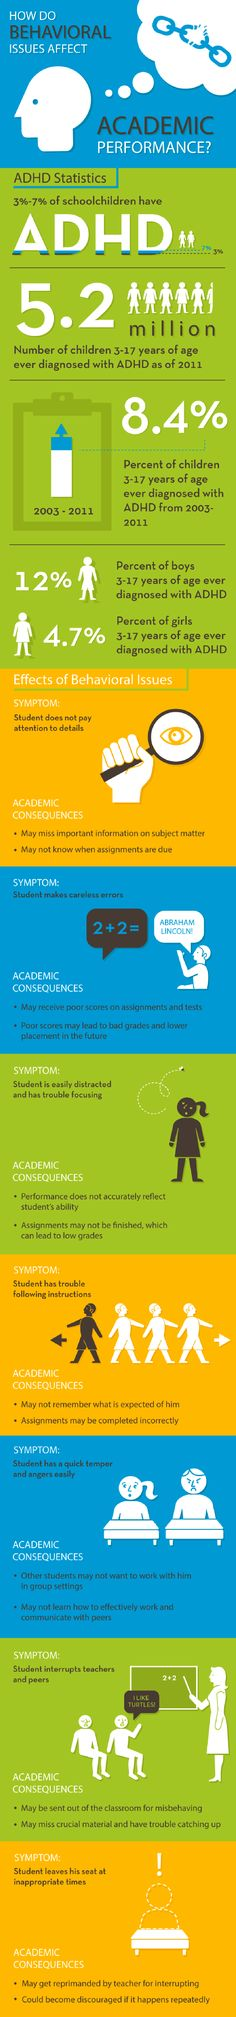 How Behavioral Issues Affect Academic Performance Infographic | e-Learning Infographics